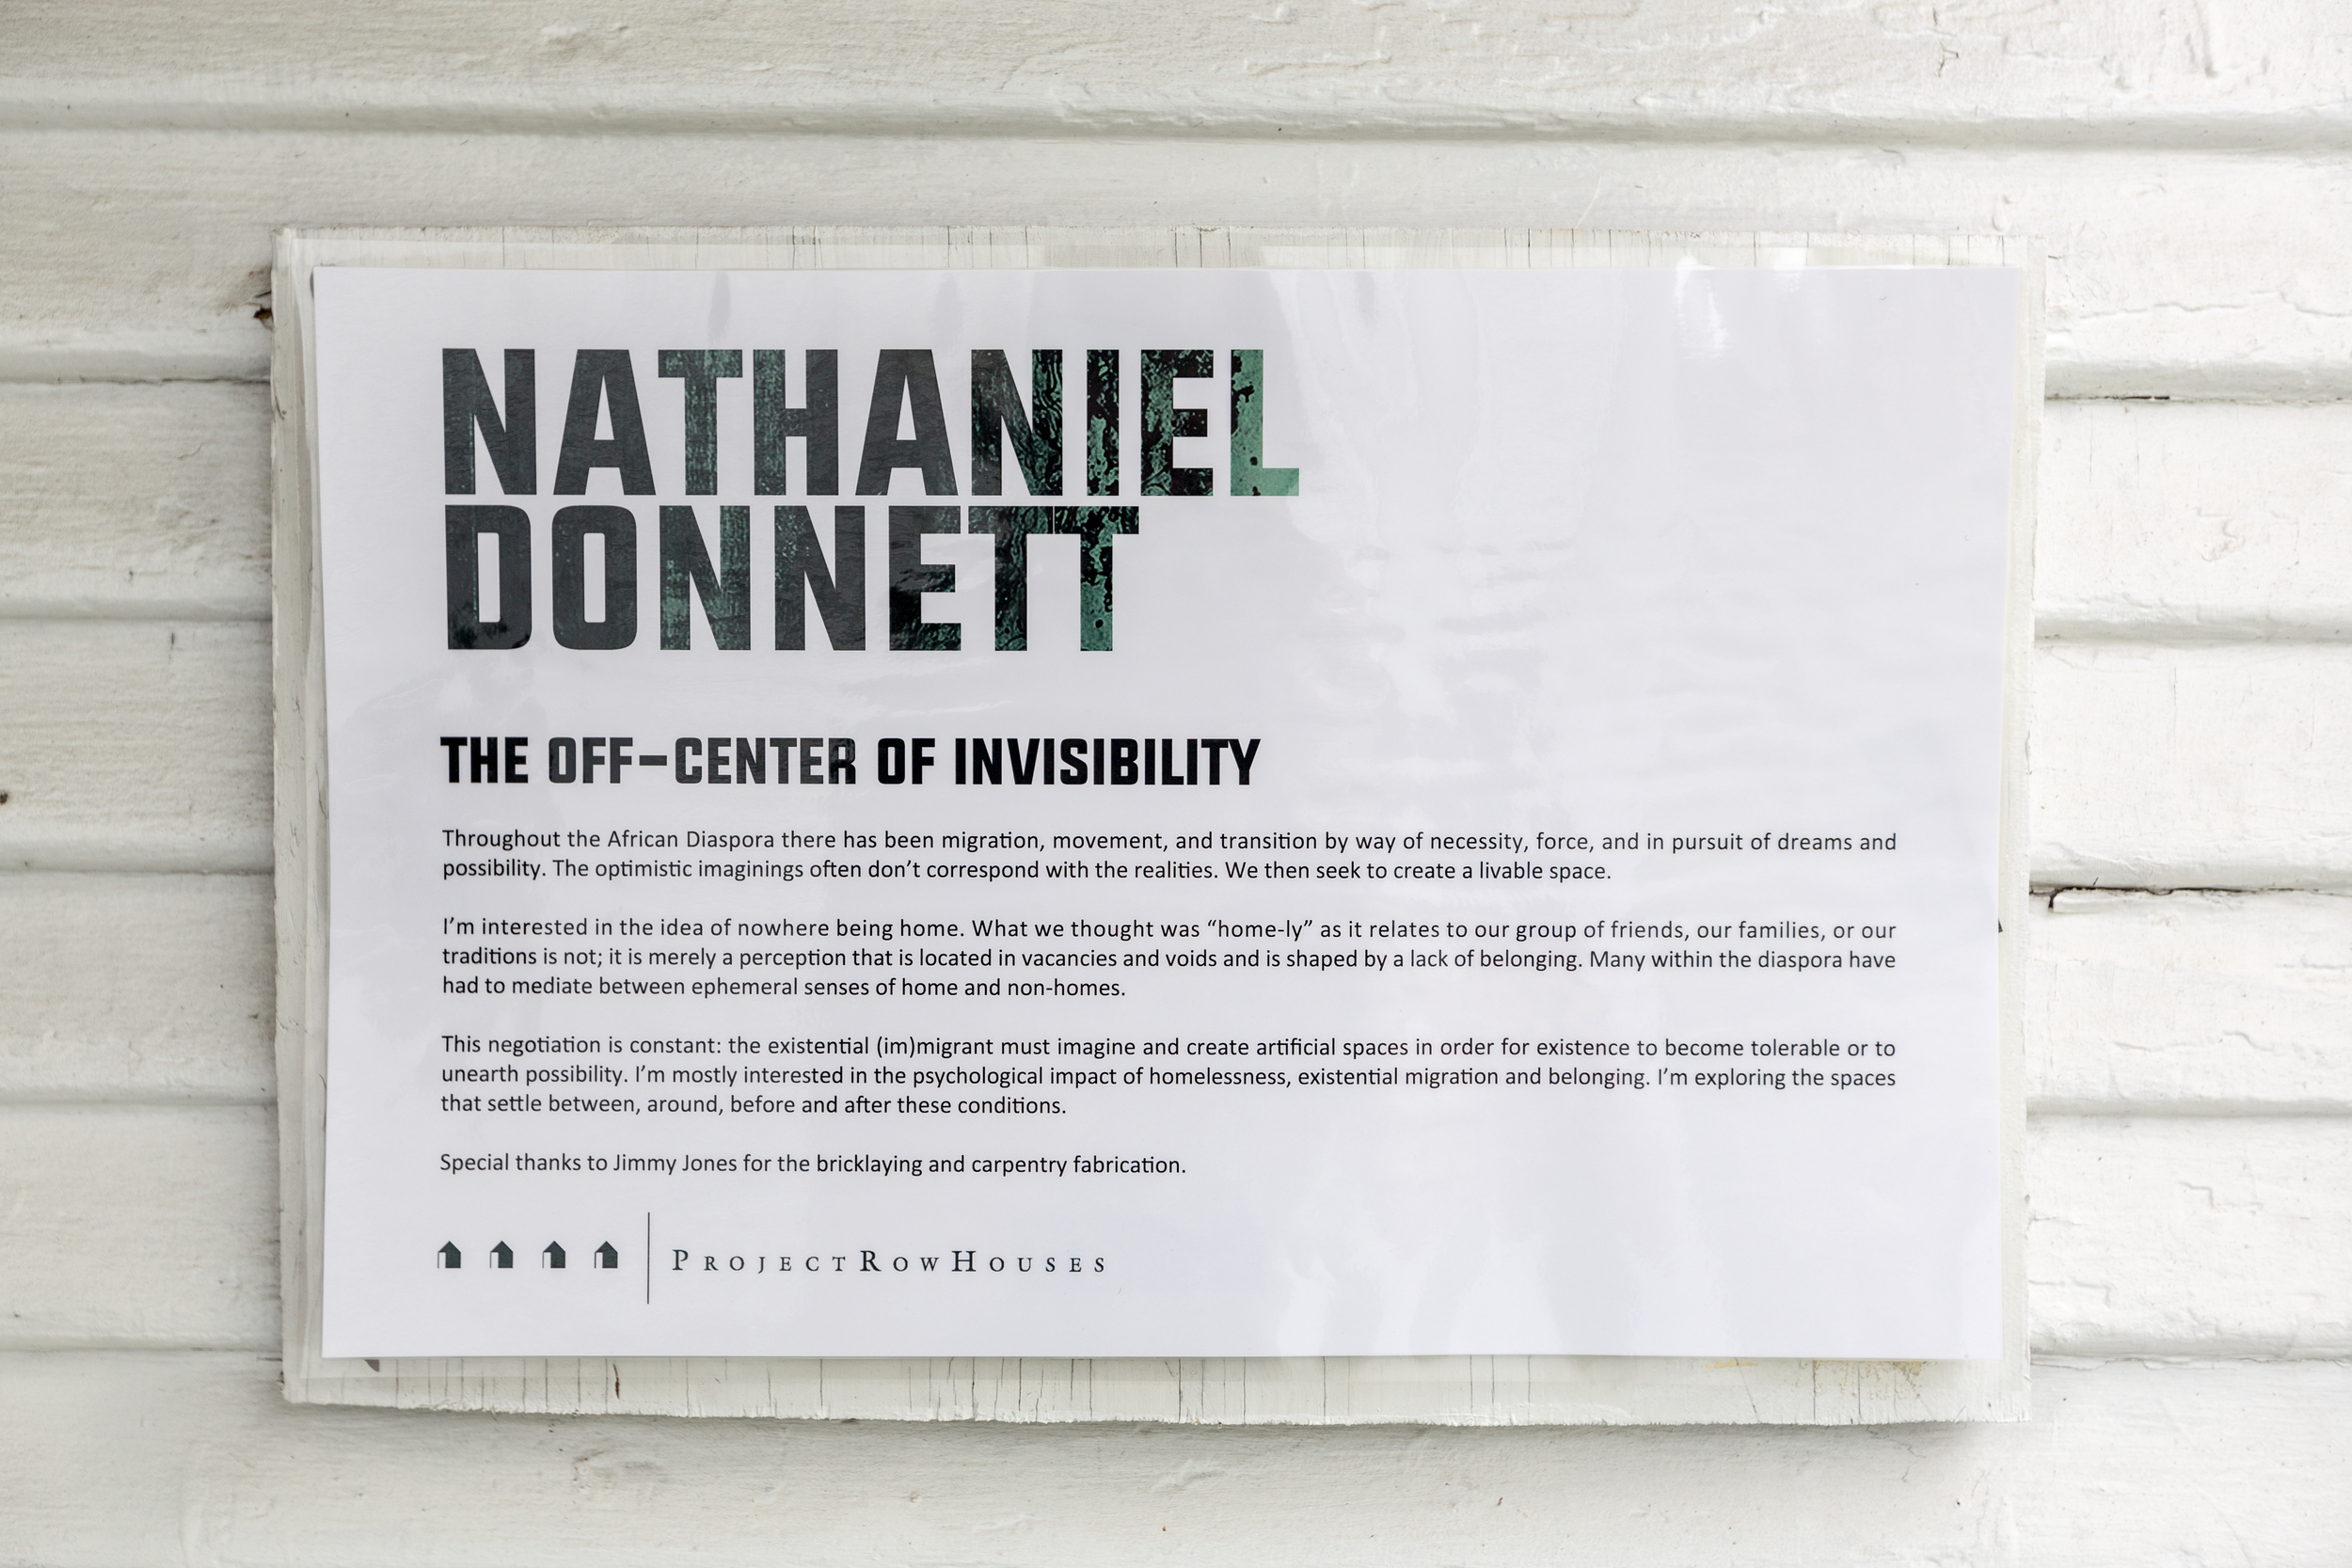 Nathaniel Donnett, the off-center of invisibility